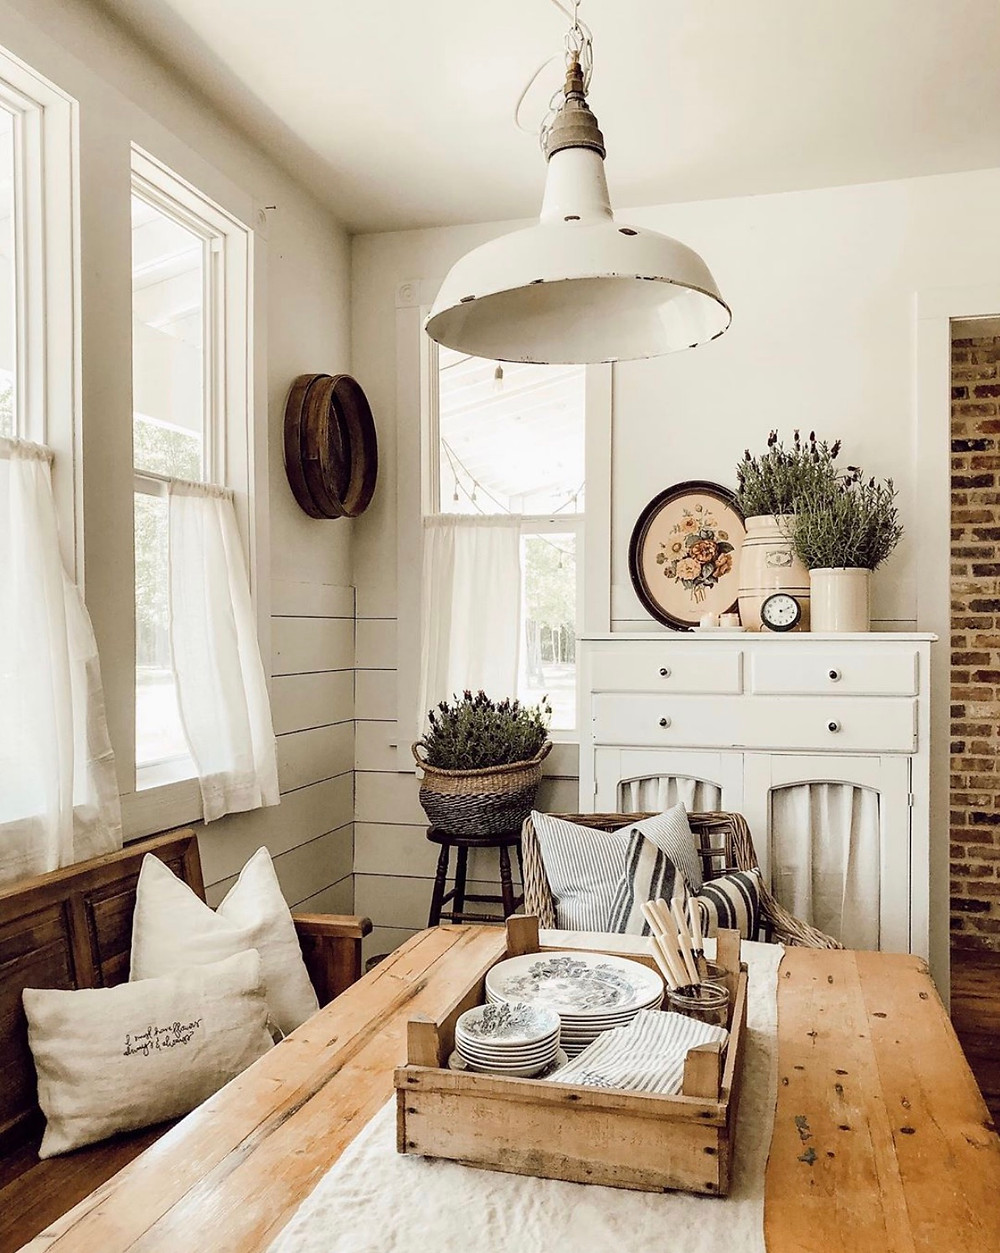 Farmhouse interior design dining room with wooden table, wooden bench, house plants, and a rustic lighting fixture